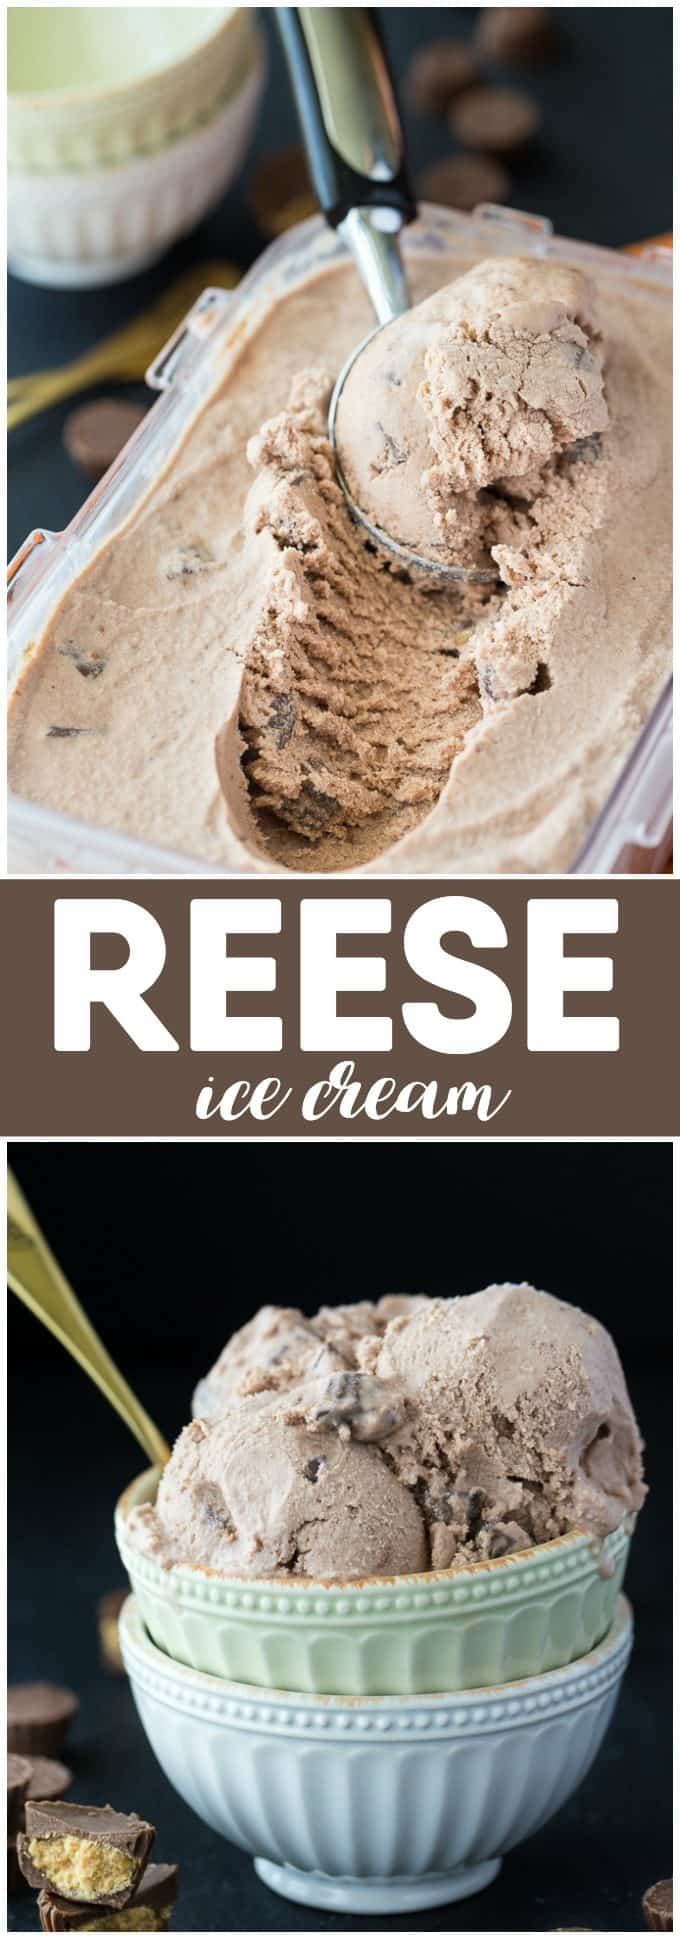 REESE Ice Cream - Creamy, smooth and packed full of yummy REESE flavour that we all know and love.